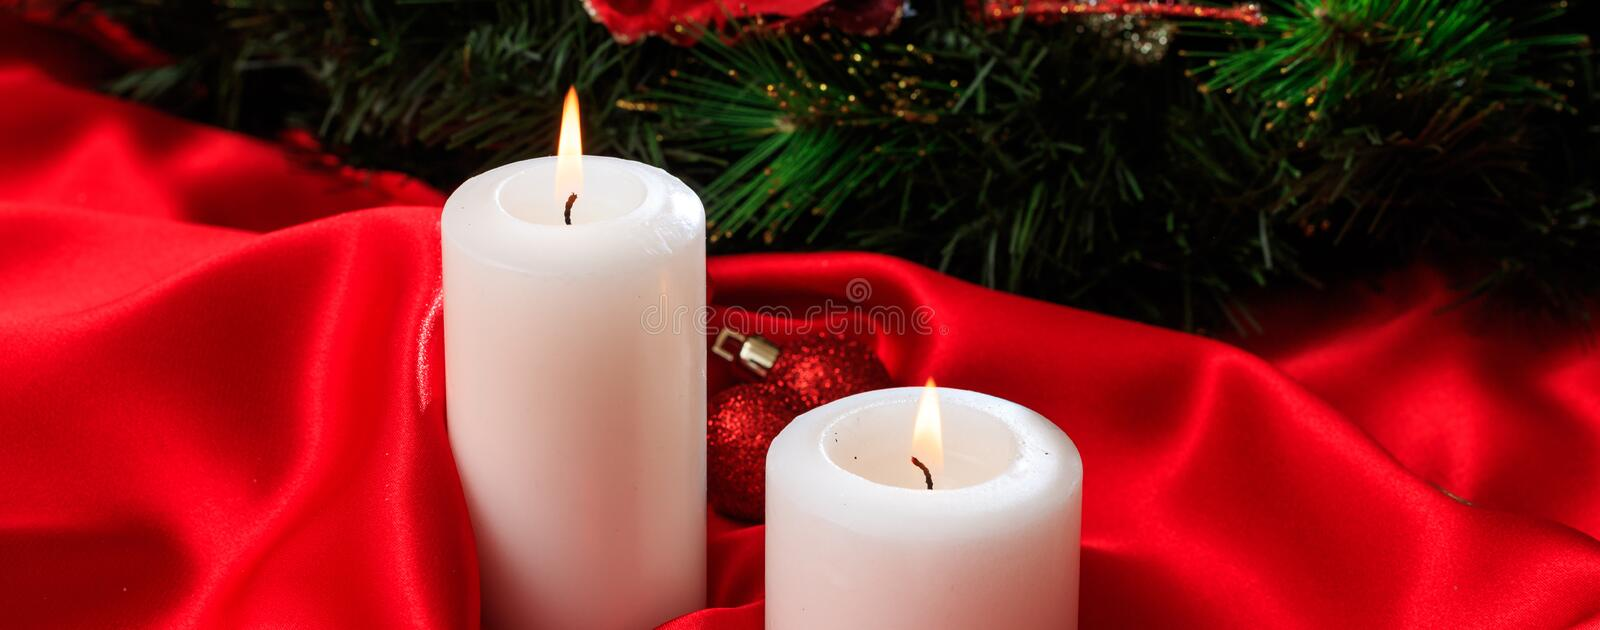 White candles on red satin burning on a dark background, banner stock photography